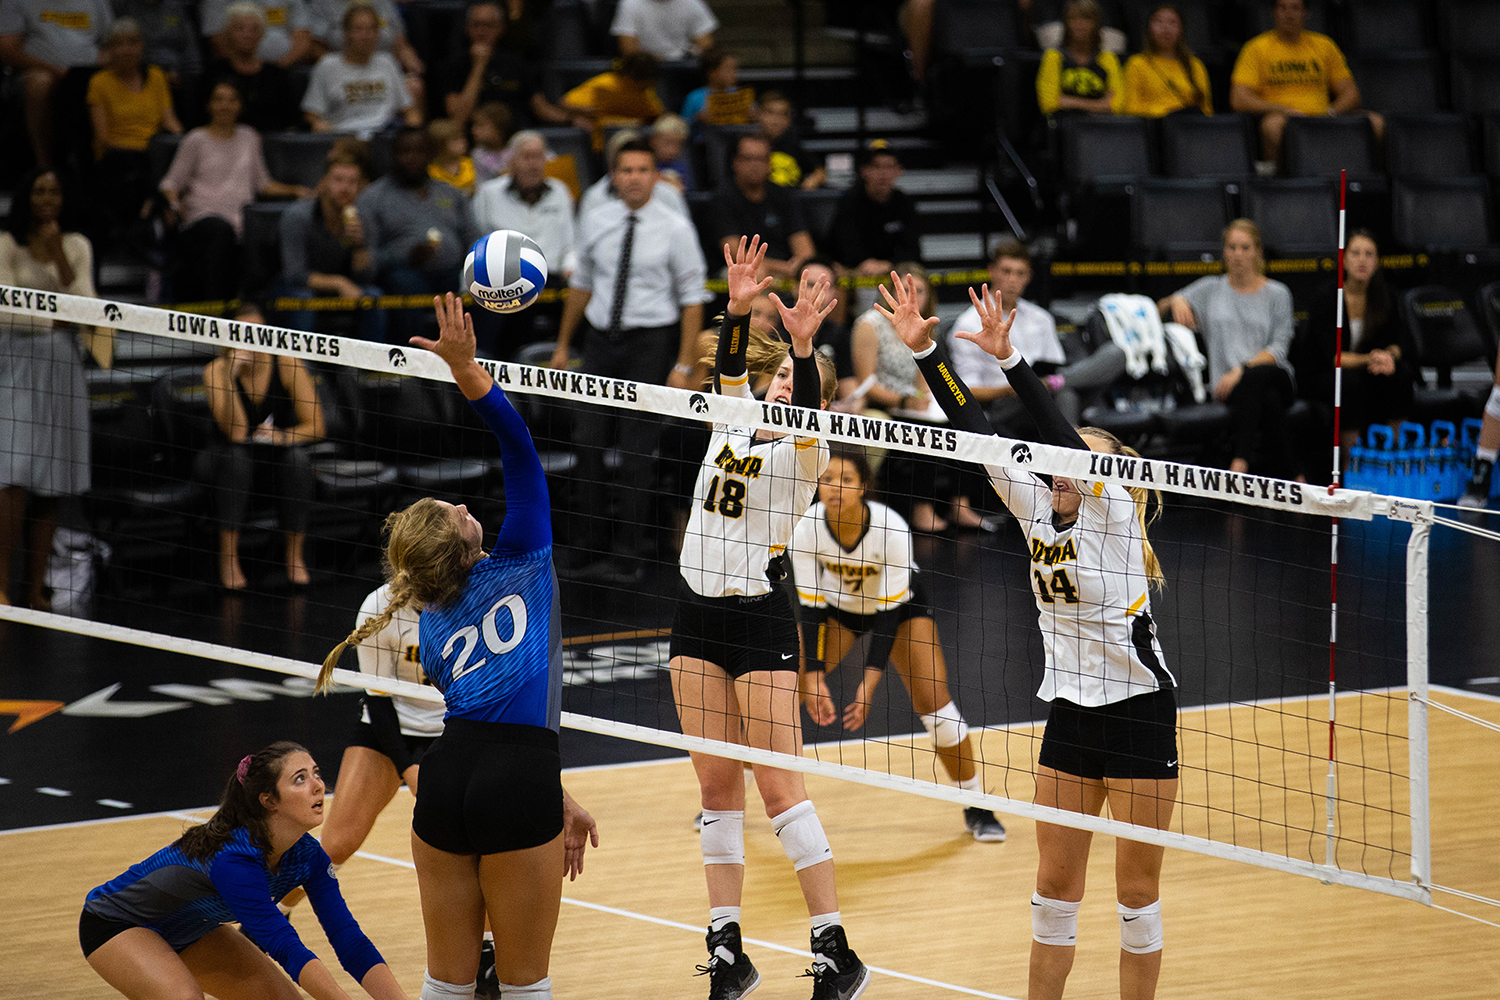 Hannah Clayton and Cali Hoye block the ball during Iowa's match against Eastern Illinois on Sunday, Sept. 9, 2018 at Carver-Hawkeye Arena. The Hawkeyes won the match 3-0.